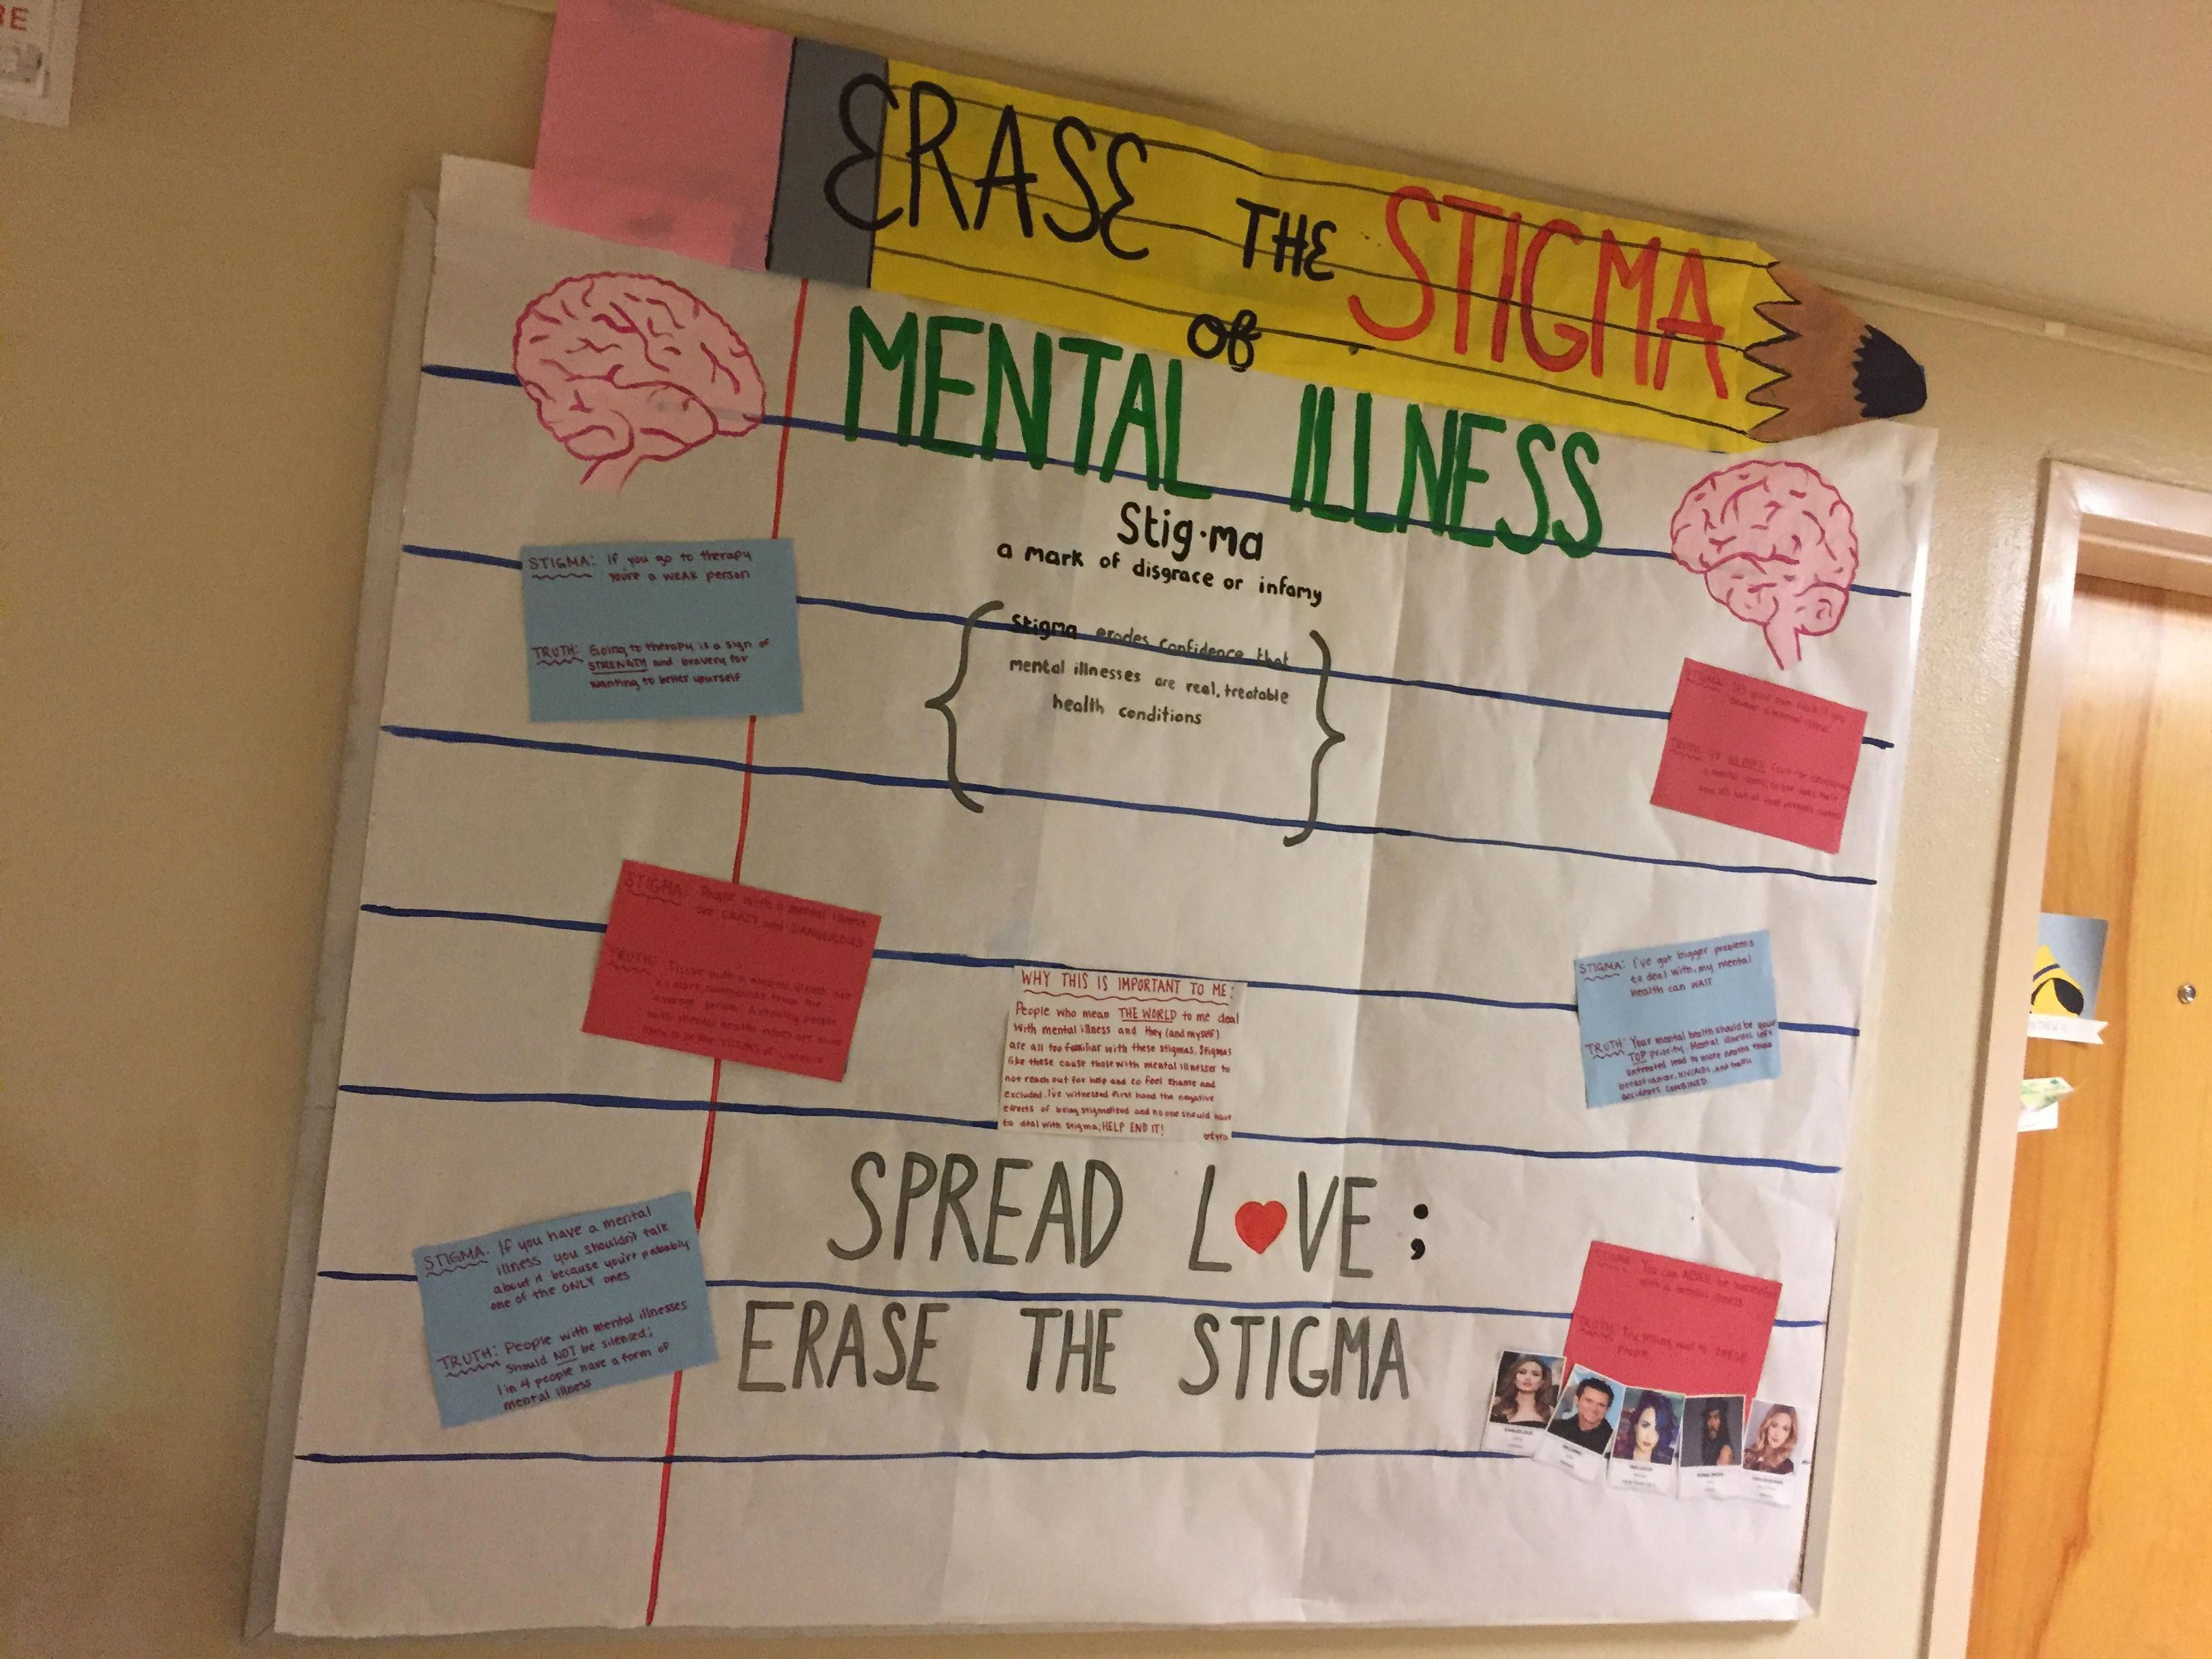 Erase the Stigma of Mental Health Bulletin Board. Mental Illness Mental Health Awareness. #RA #reslife #passives #bulletinboard #college #rabulletinboards